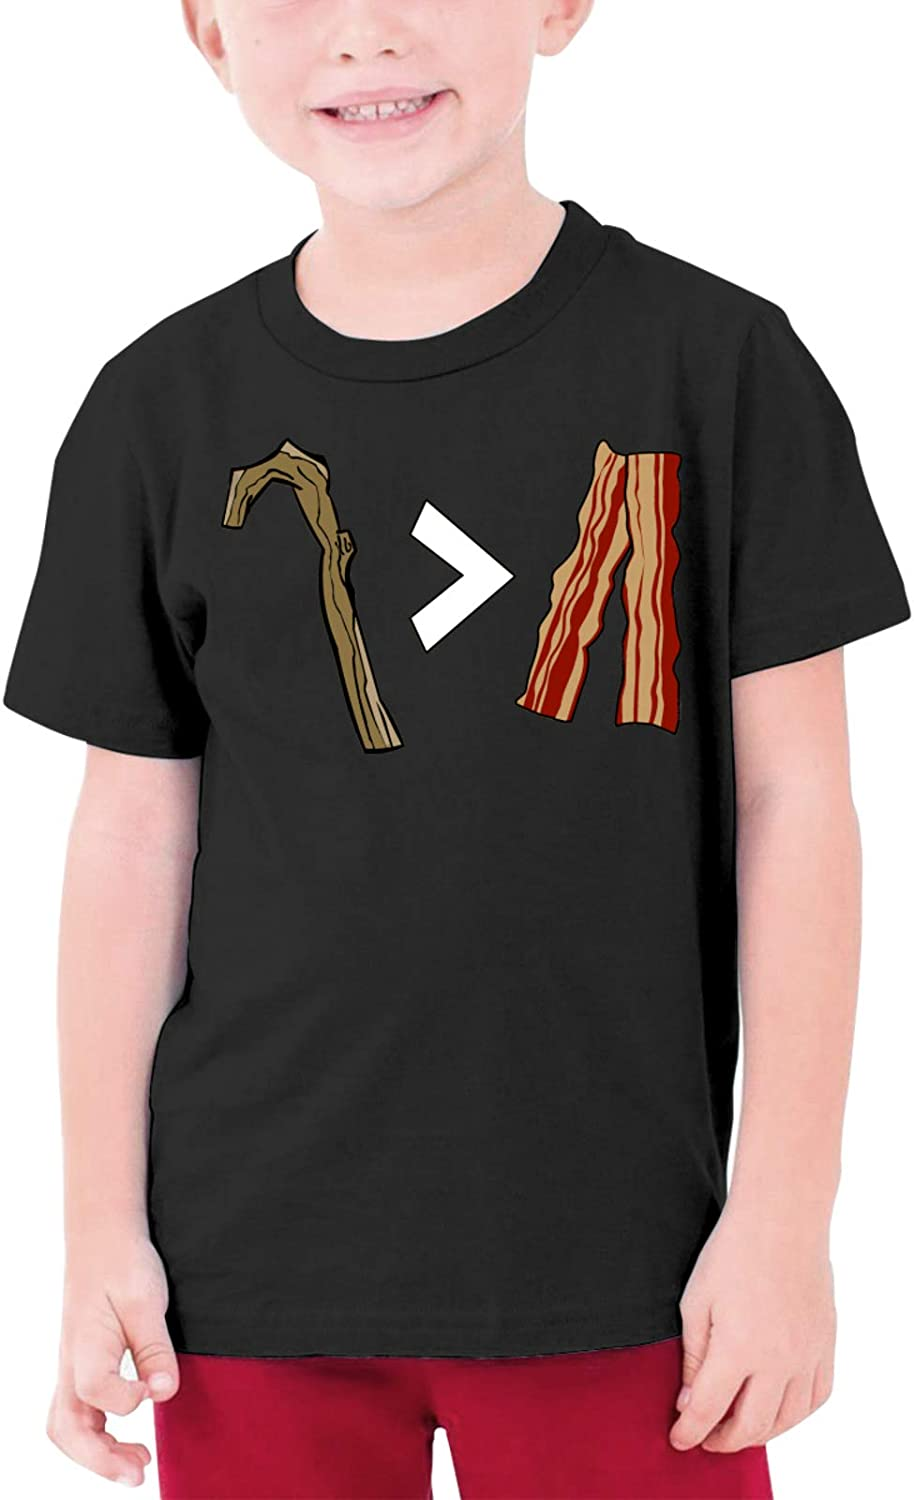 My Stick is Better Than Bacon Boys Girls Tshirts Short Sleeve Cotton T-Shirt Youth Tees Tops